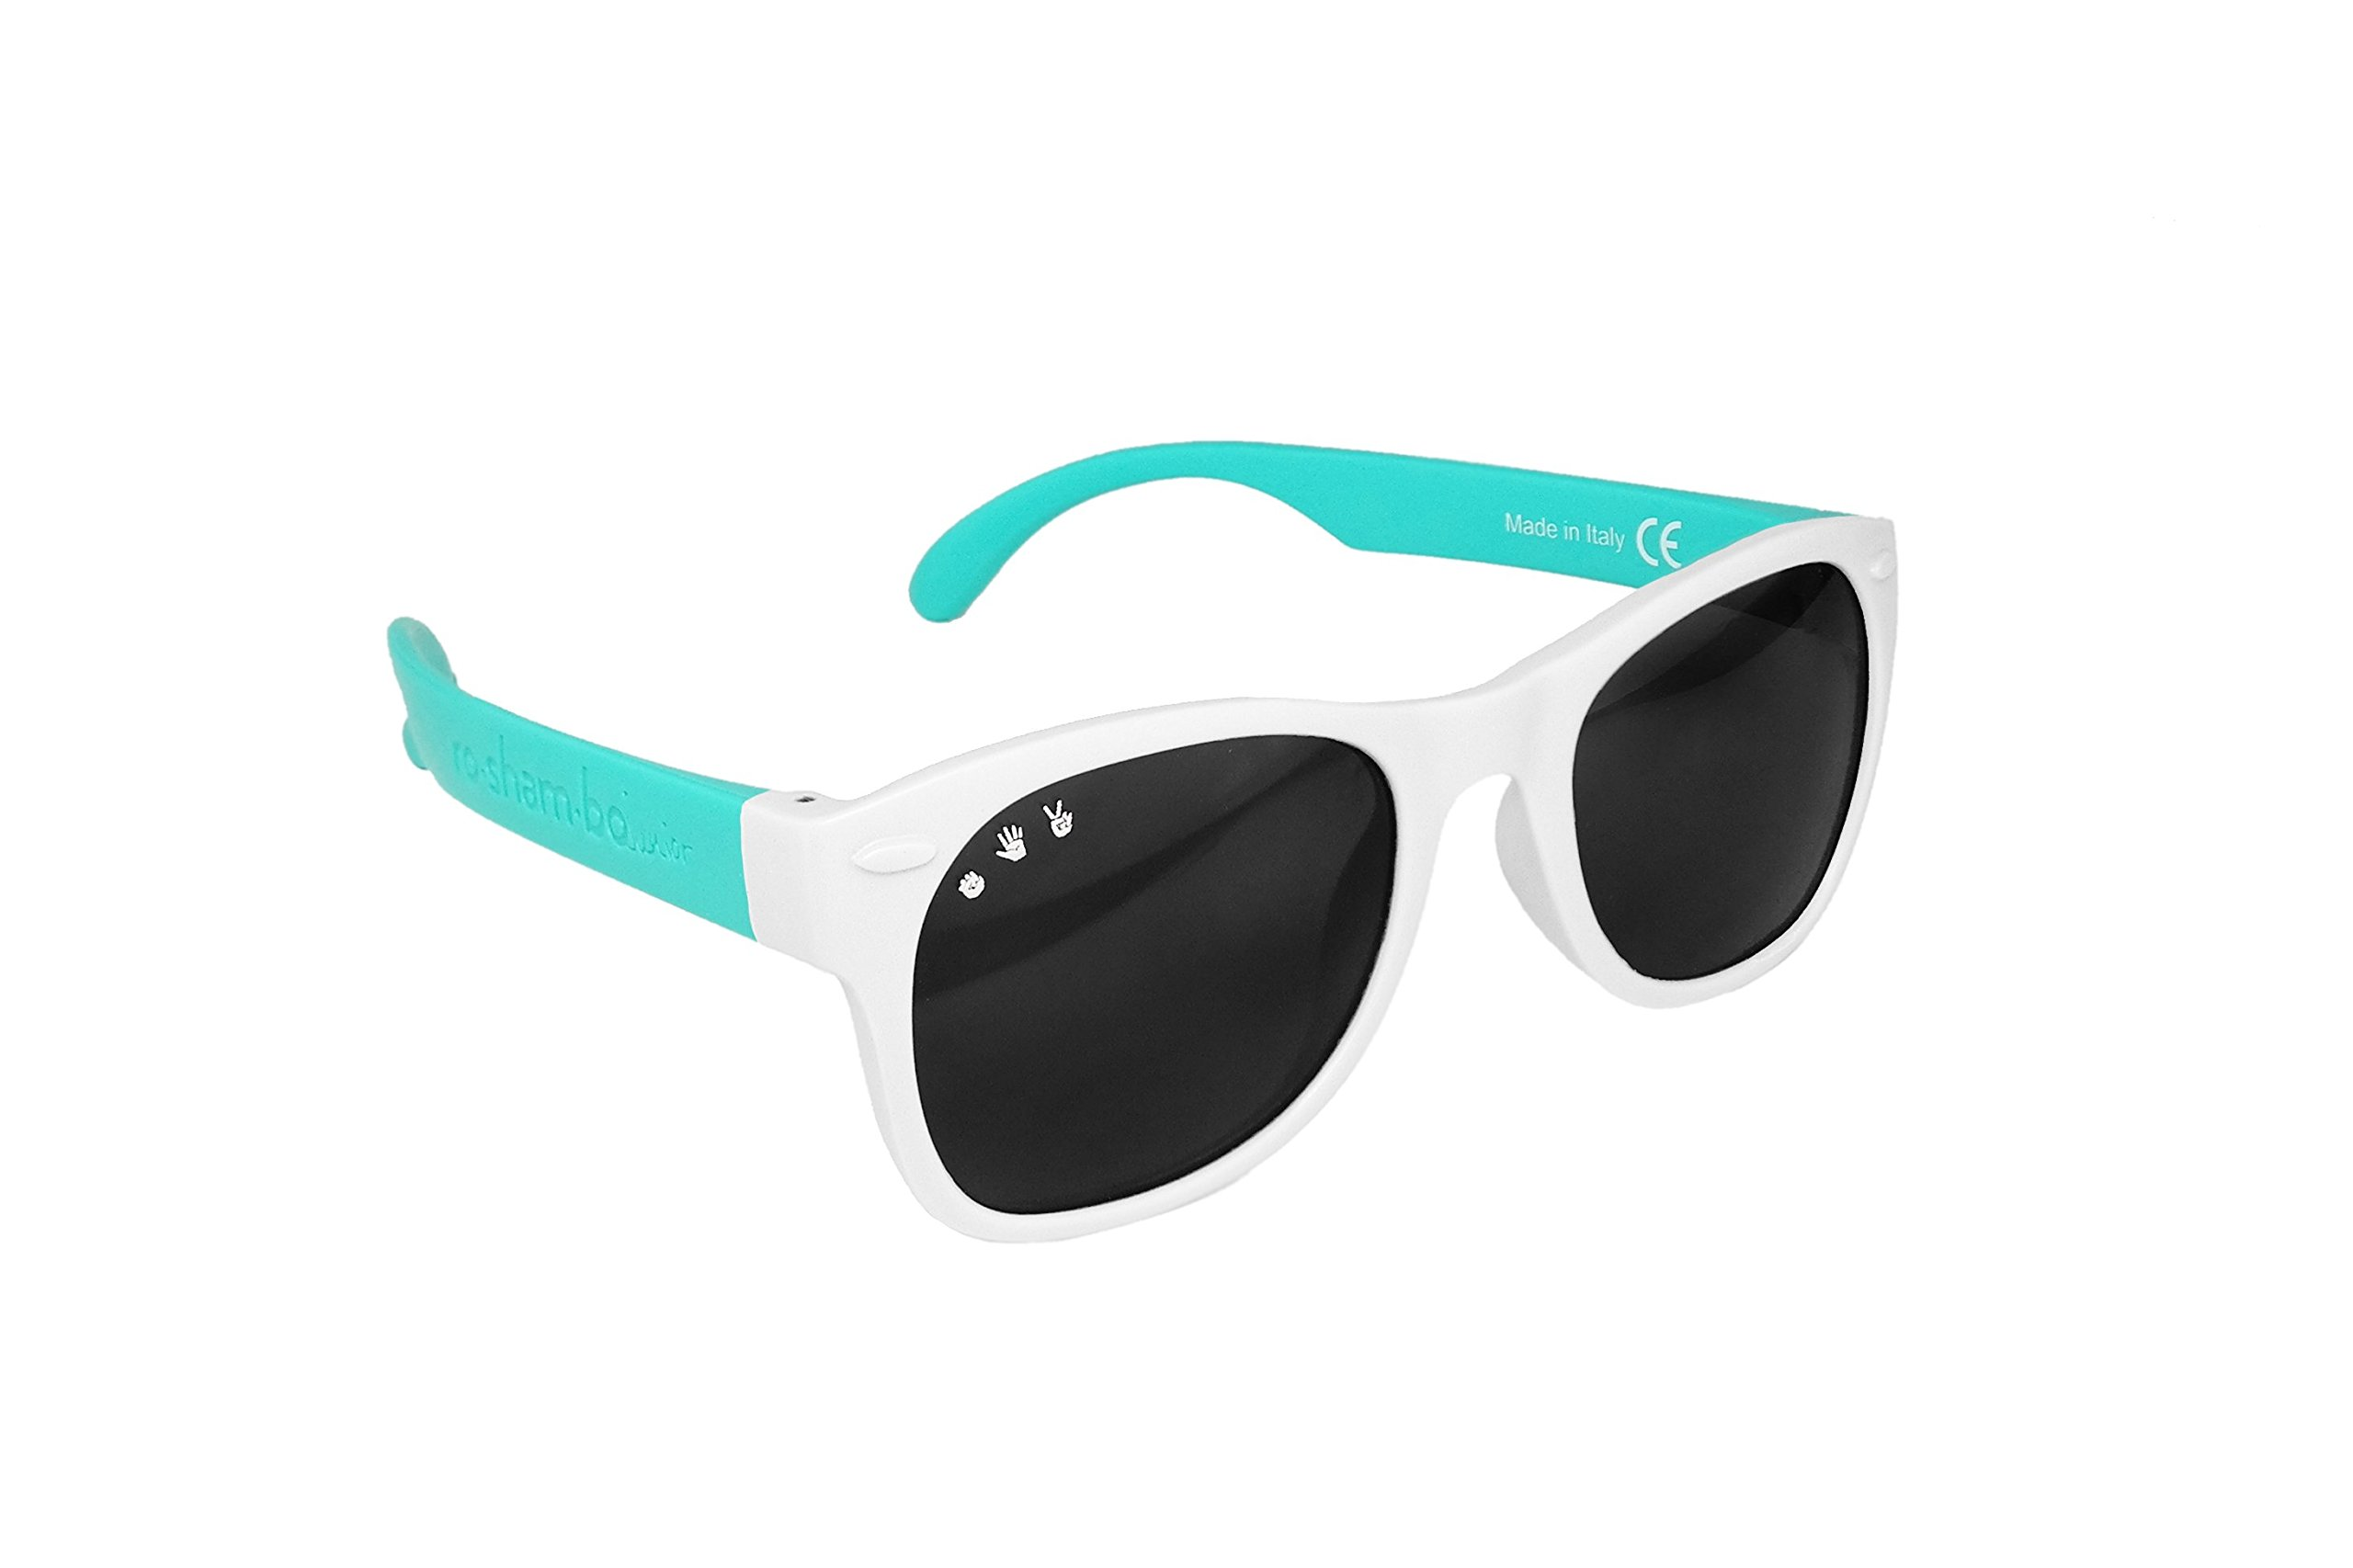 Roshambo Junior Shades, 90210 (Teal/White) by Roshambo Baby (Image #3)